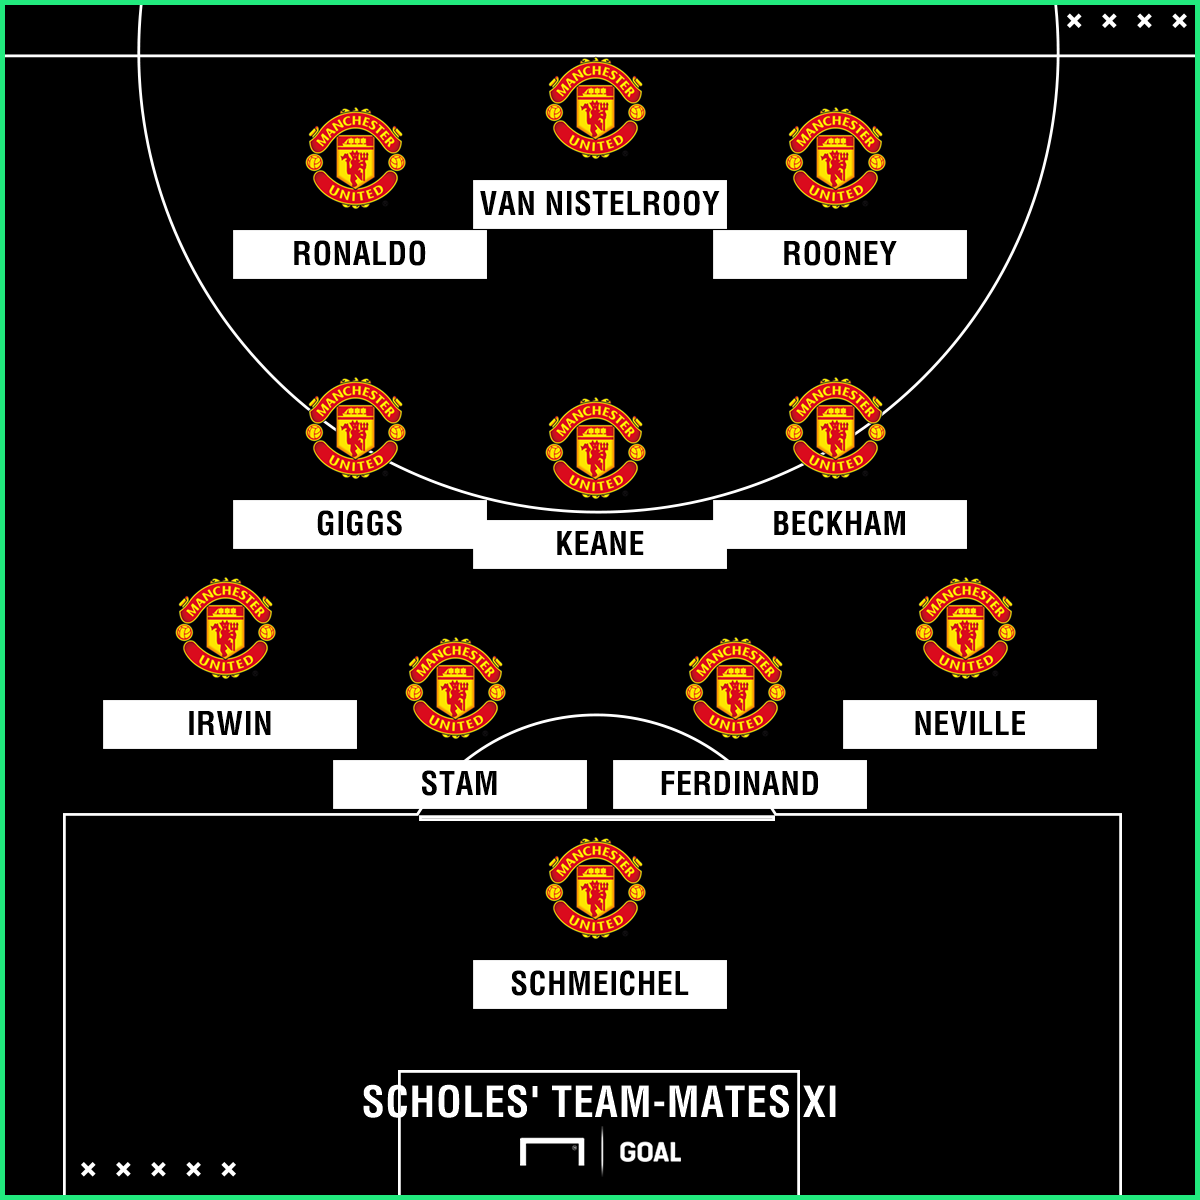 Paul Scholes Manchester United team-mates XI